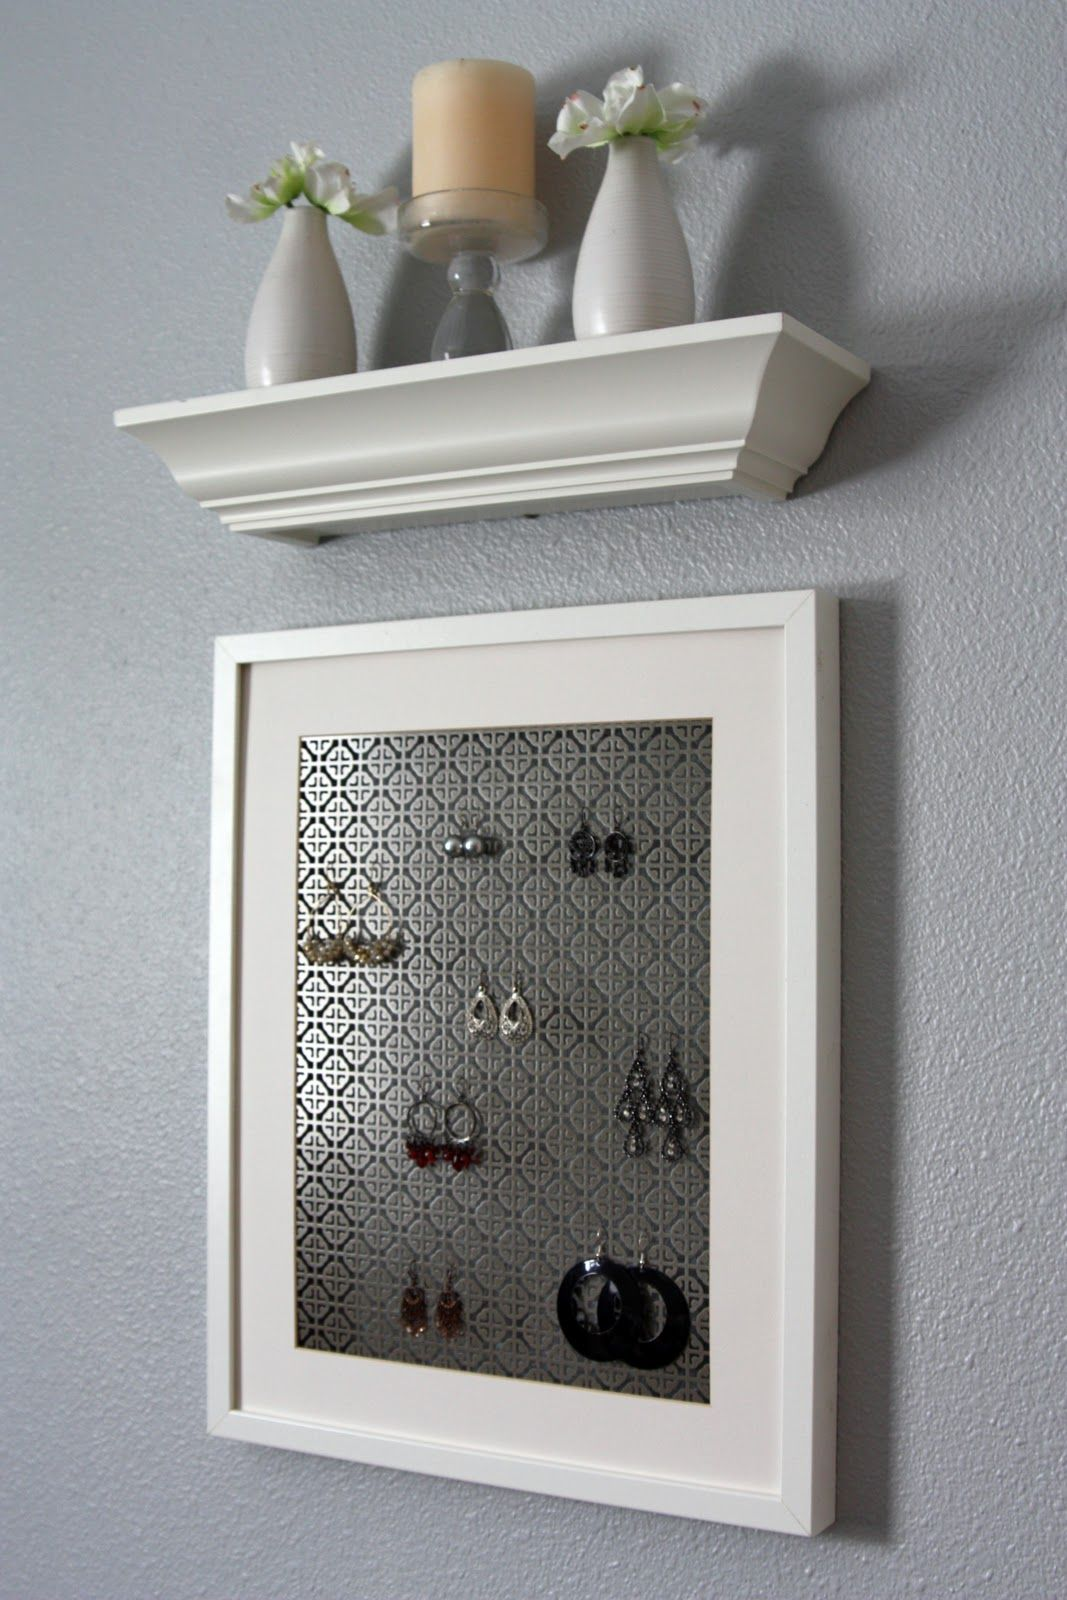 IHeart Organizing:  an easy DIY project!